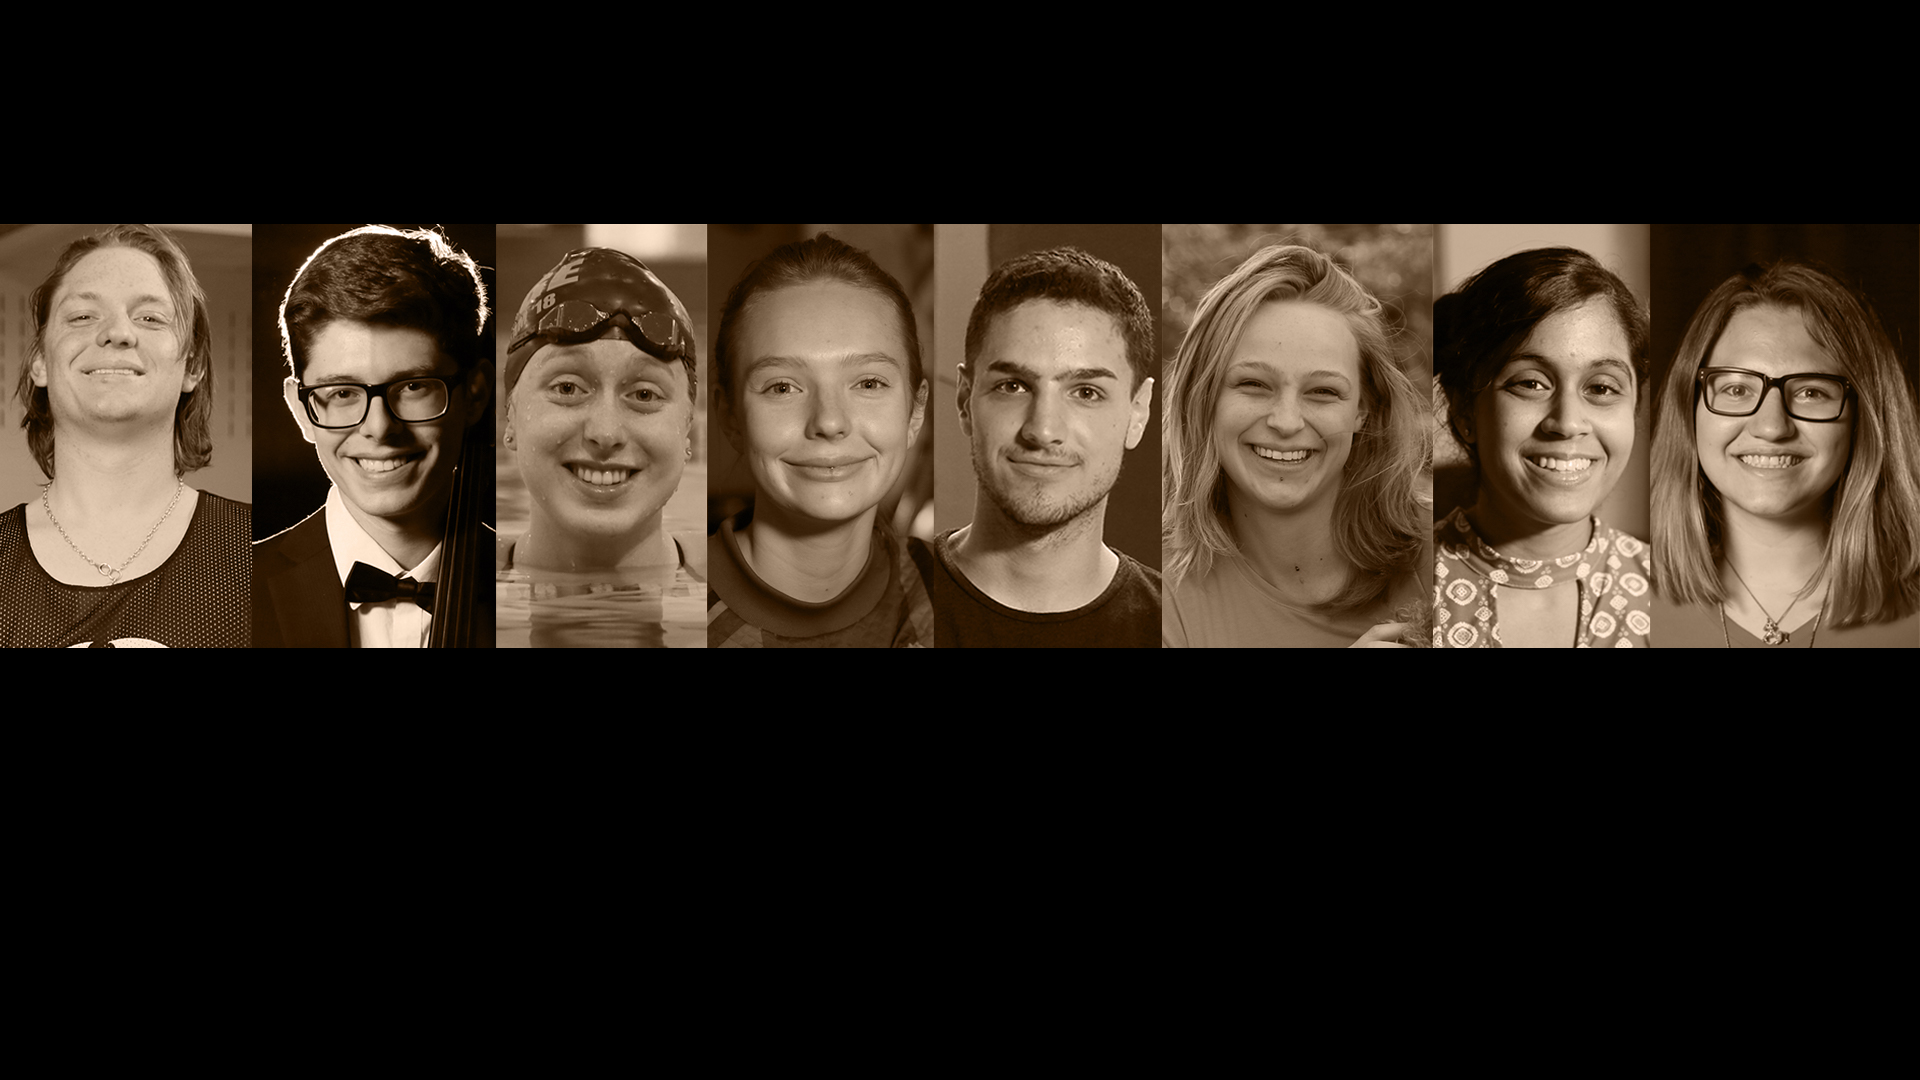 Head shots of 8 graduates featured in the Grads at a Glance 2018 series